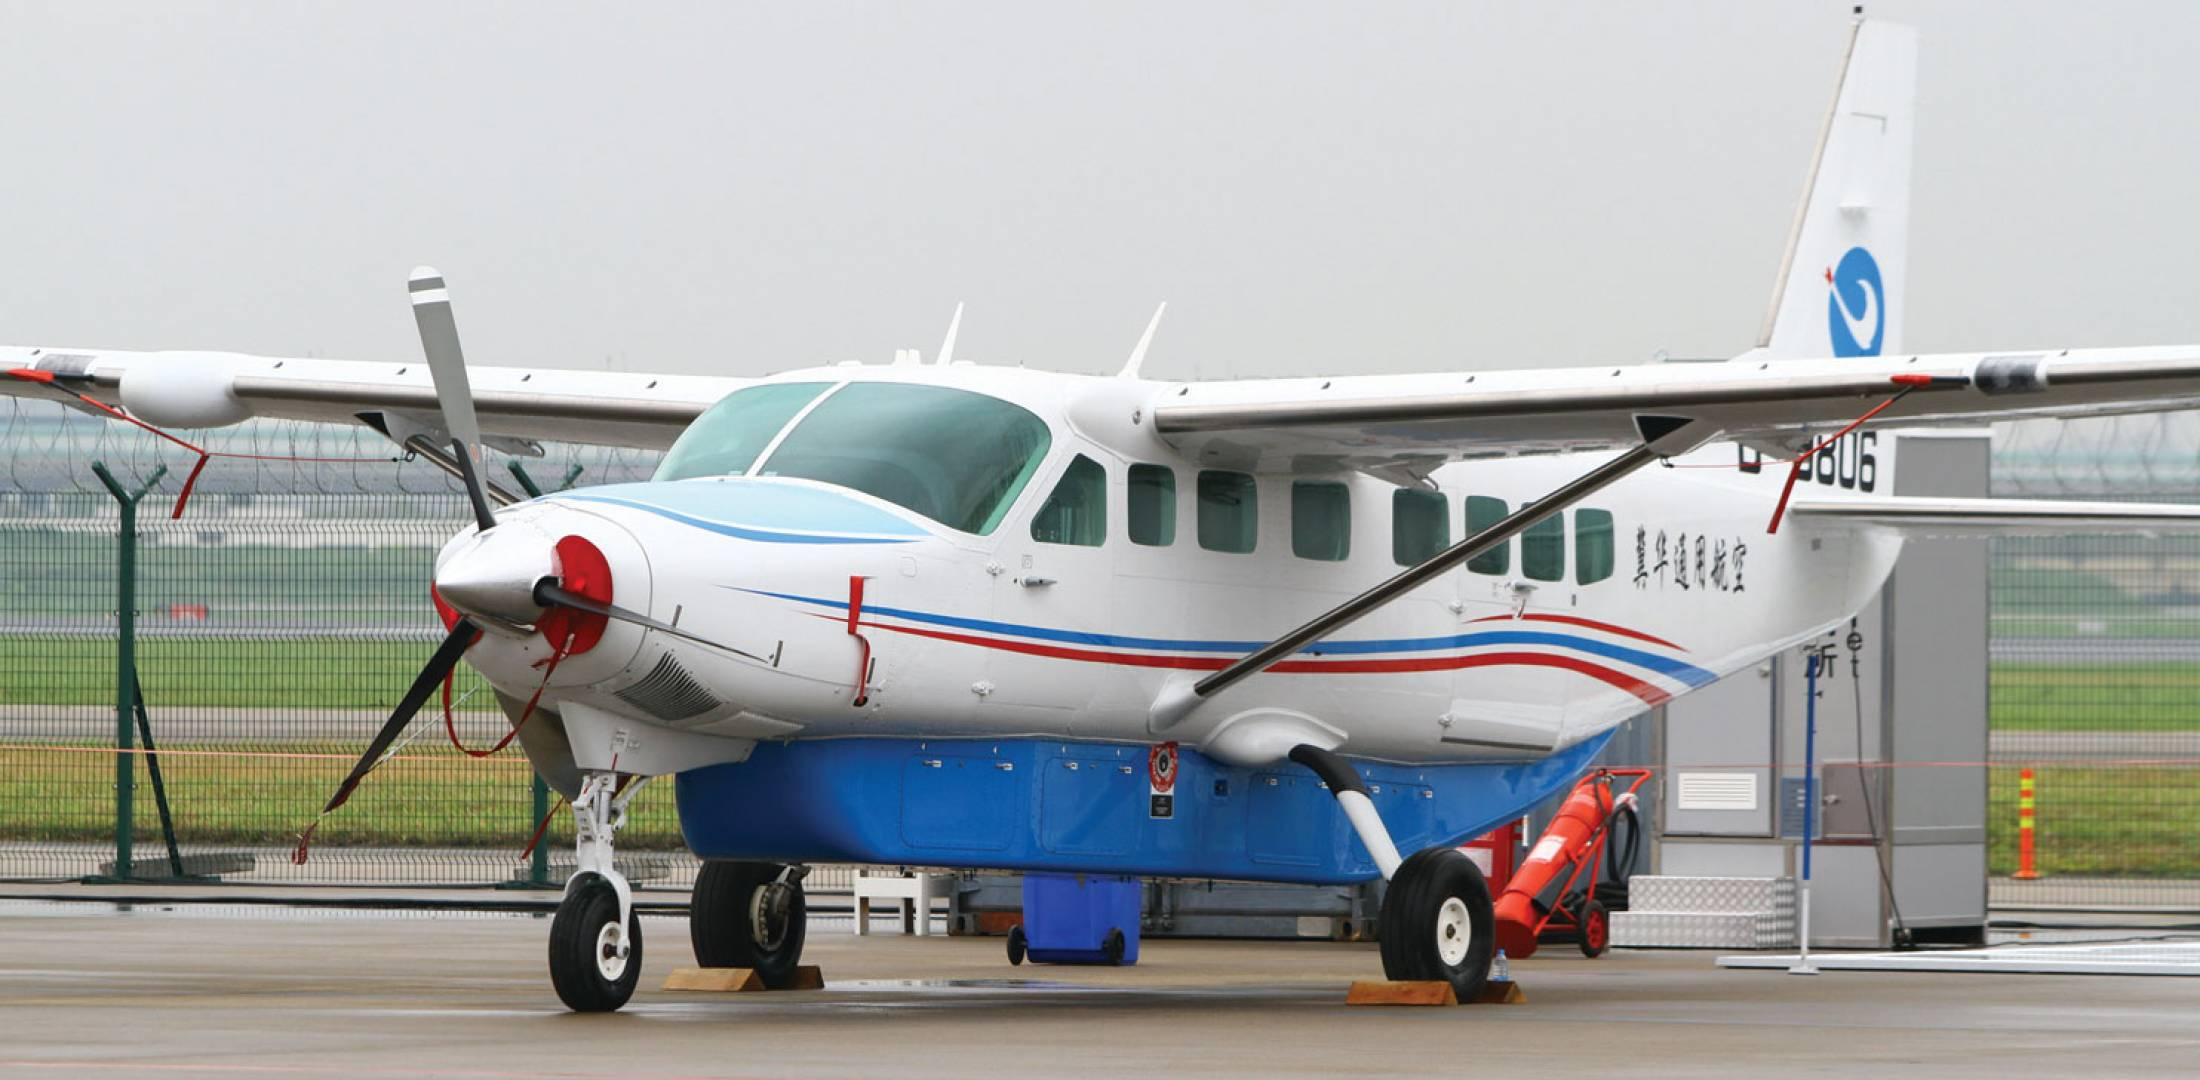 Beijing-based Reignwood Group has ordered 10 float-equipped Cessna Caravan  turboprop singles for tourism services.